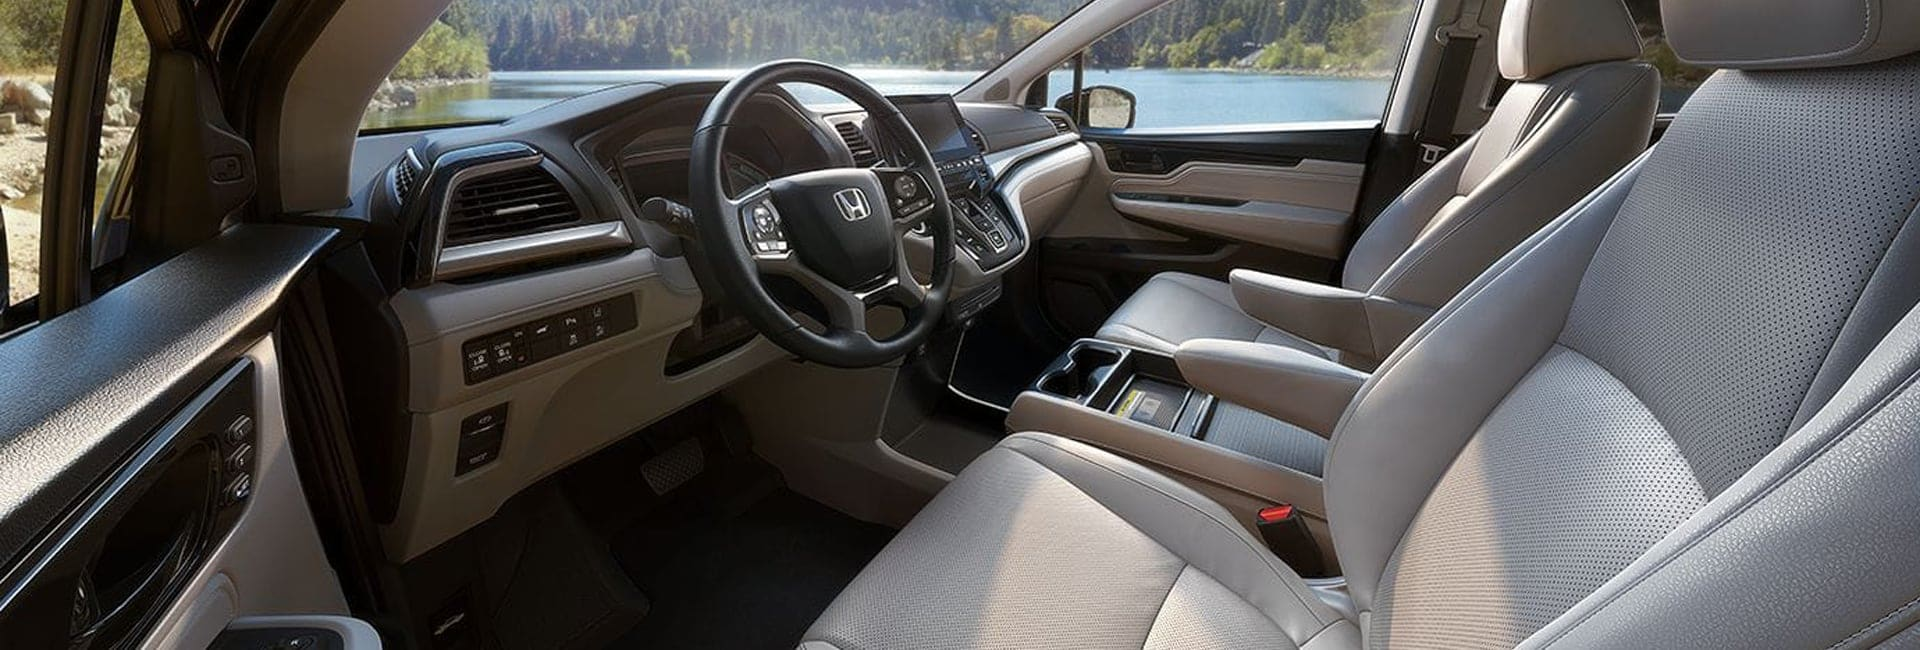 2019 Honda Odyssey Interior Features